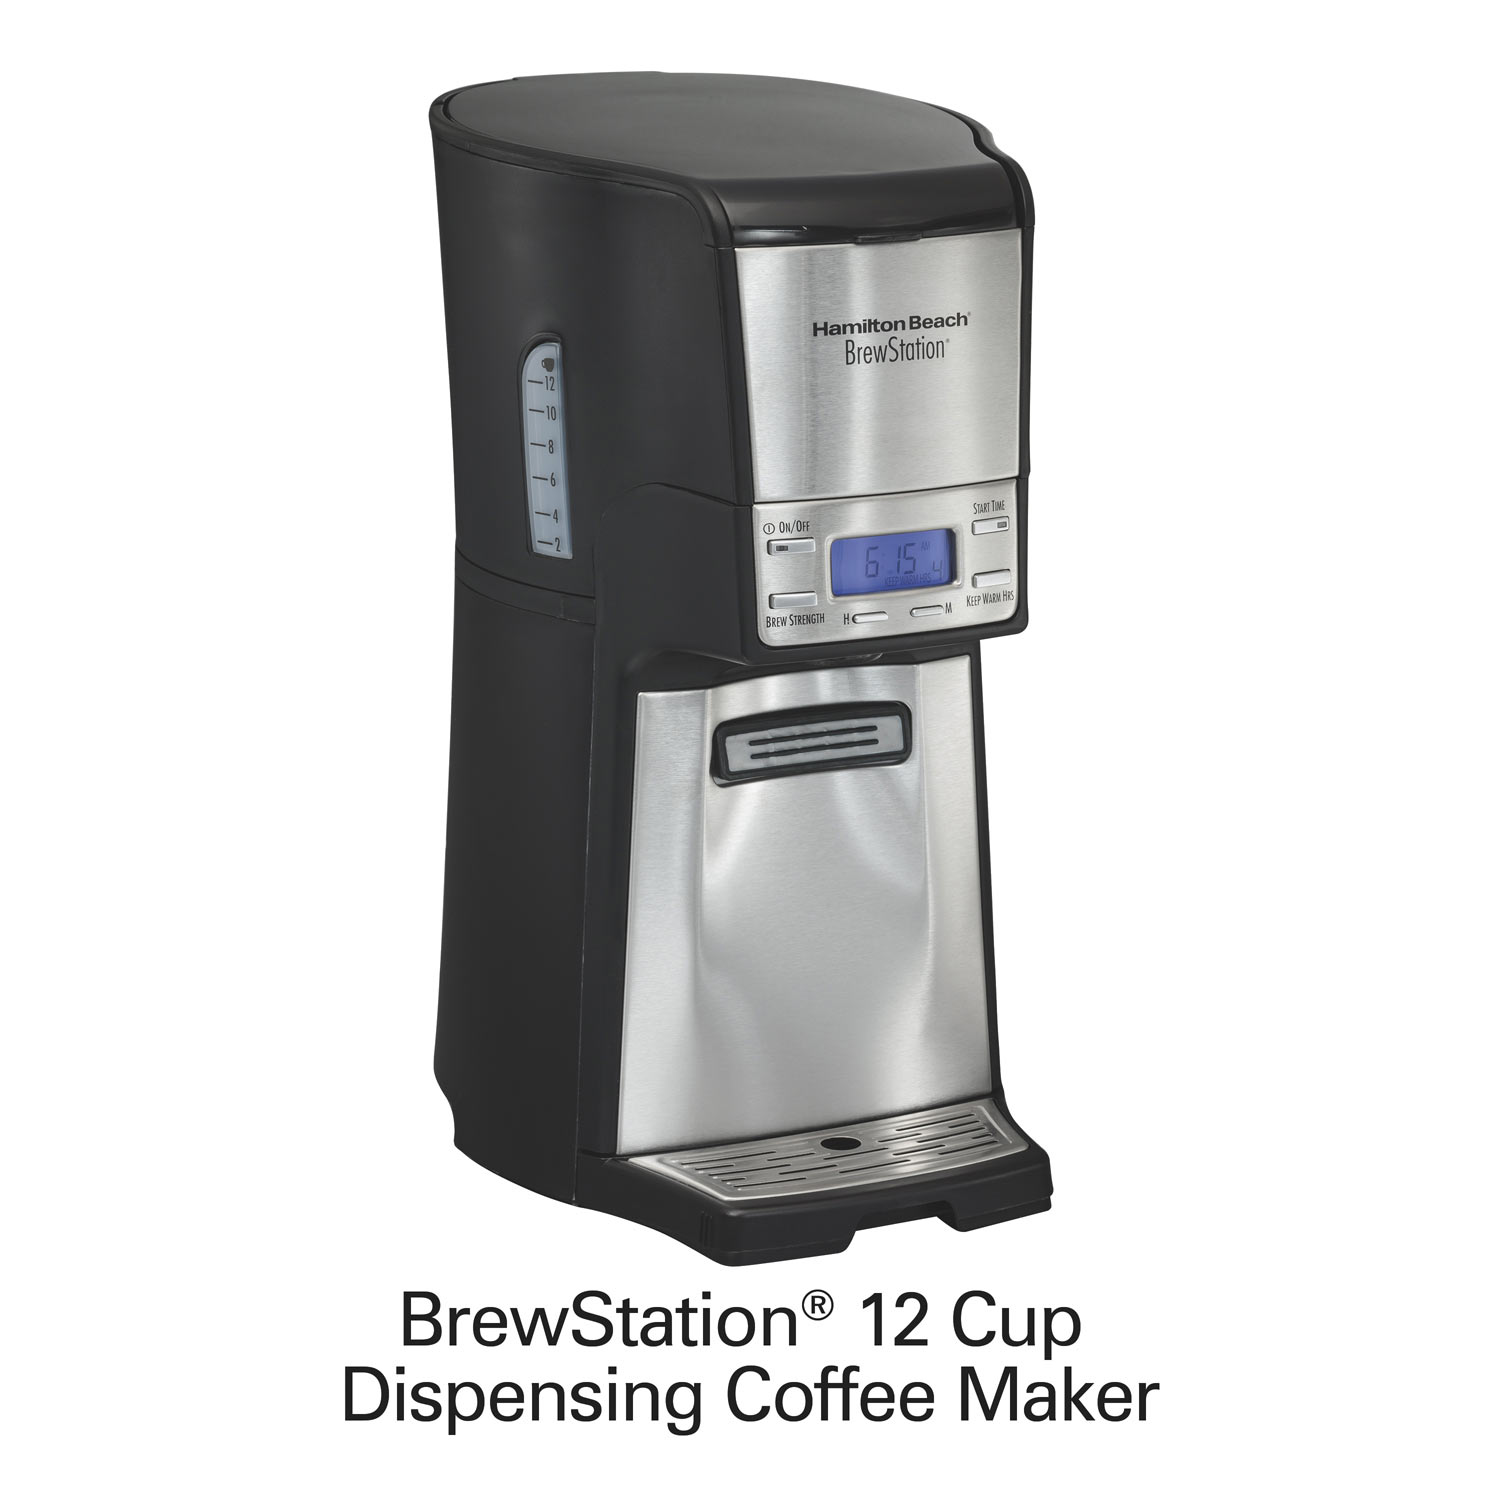 hamilton beach brewstation 12-cup coffee maker instructions